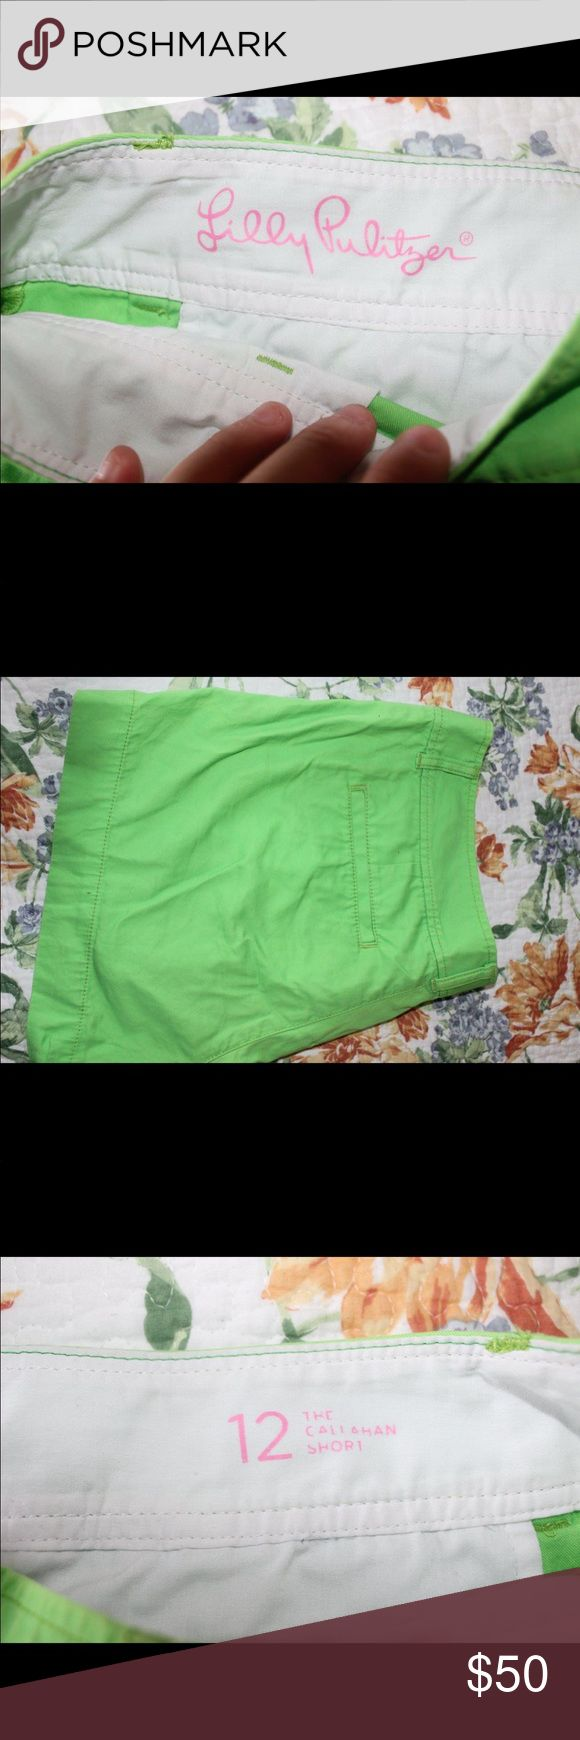 Lilly Pulitzer lime green shorts size 12 Great condition. Smoke/pet free home. Lilly Pulitzer Shorts